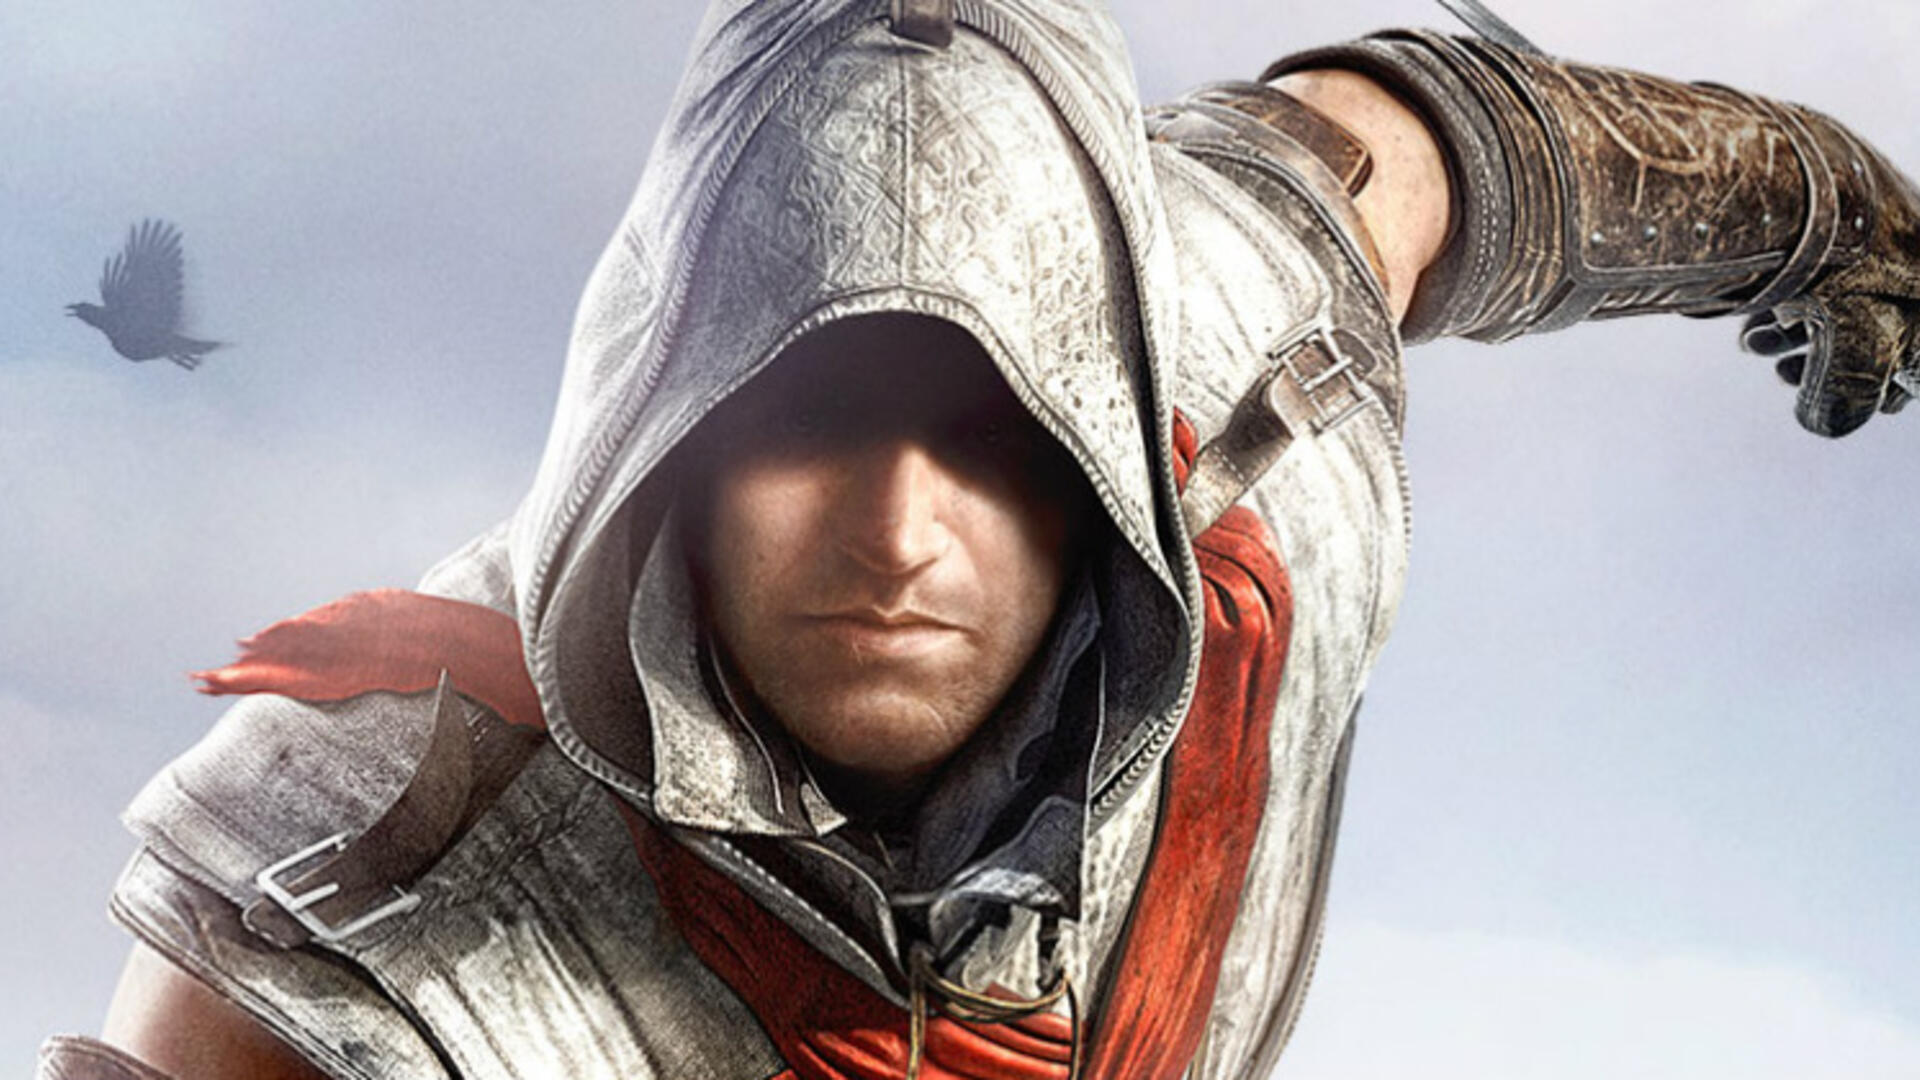 """Assassin's Creed Needs """"The Right Direction"""" Before More Annual Releases"""